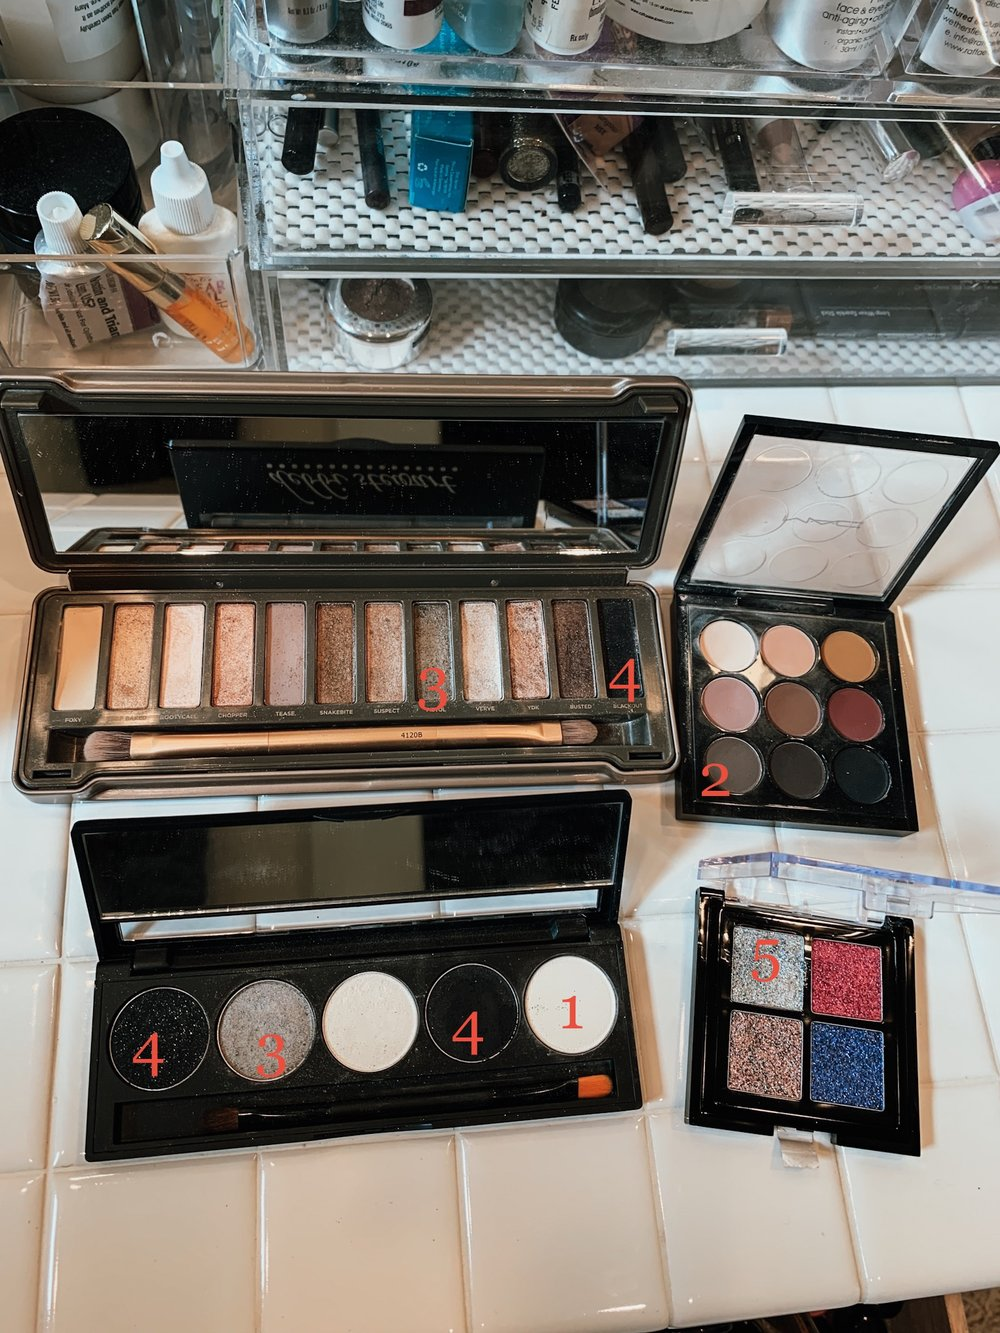 My supplies - Using makeup I had, here are products I used in order of the demo.